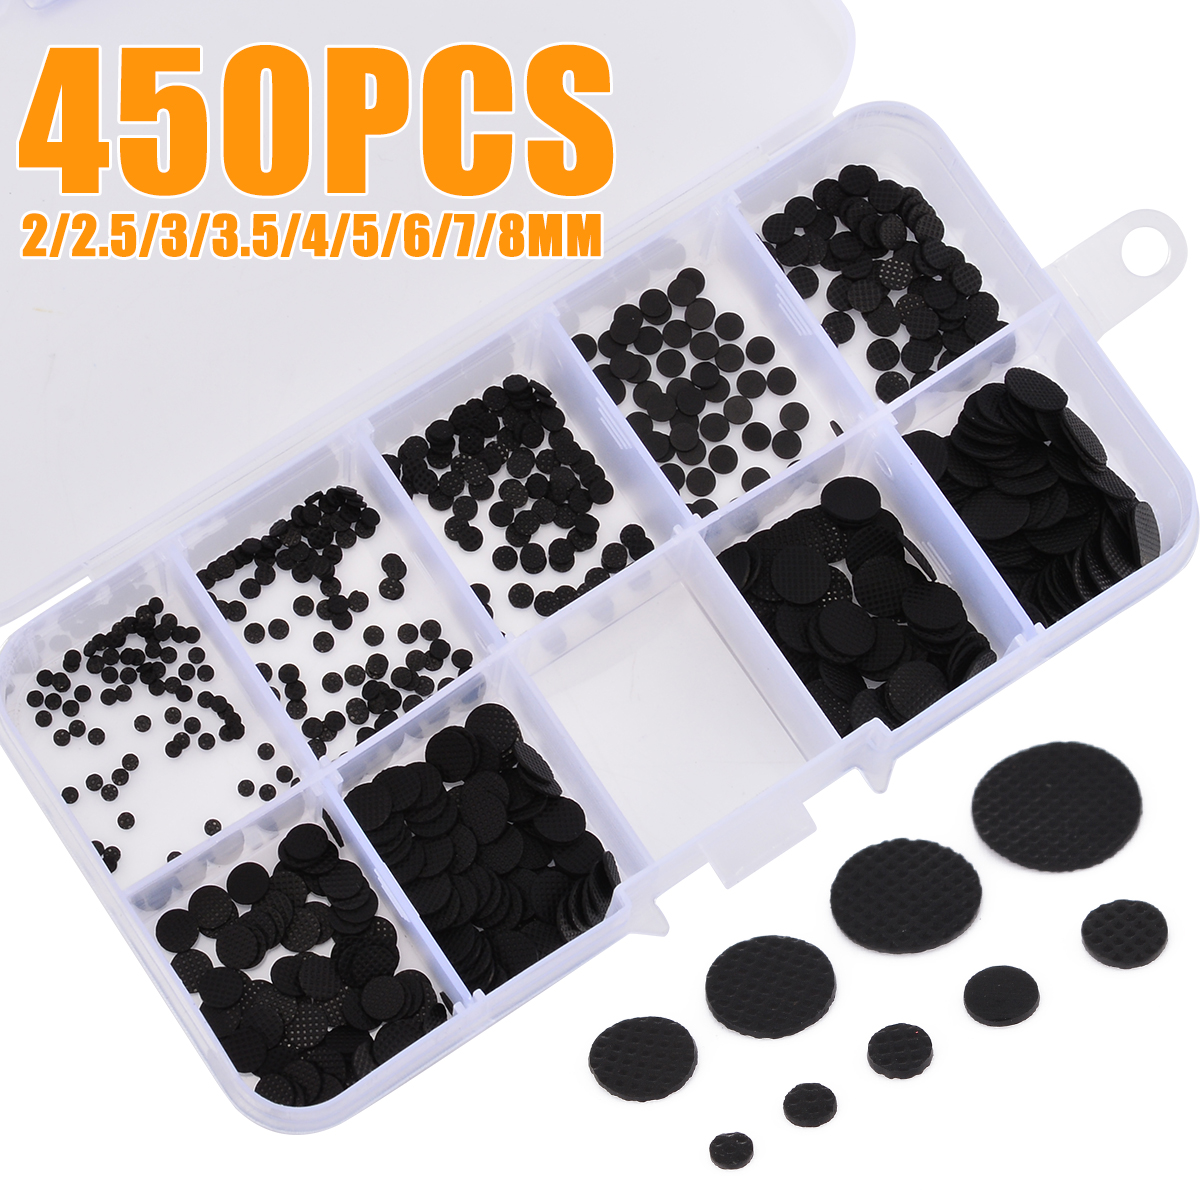 450pcs/box 2/2.5/3/3.5/4/5/6/ 7/8mm Conductive Pads Keypad Repair Kits For Remote Control Conductive Rubber Buttons